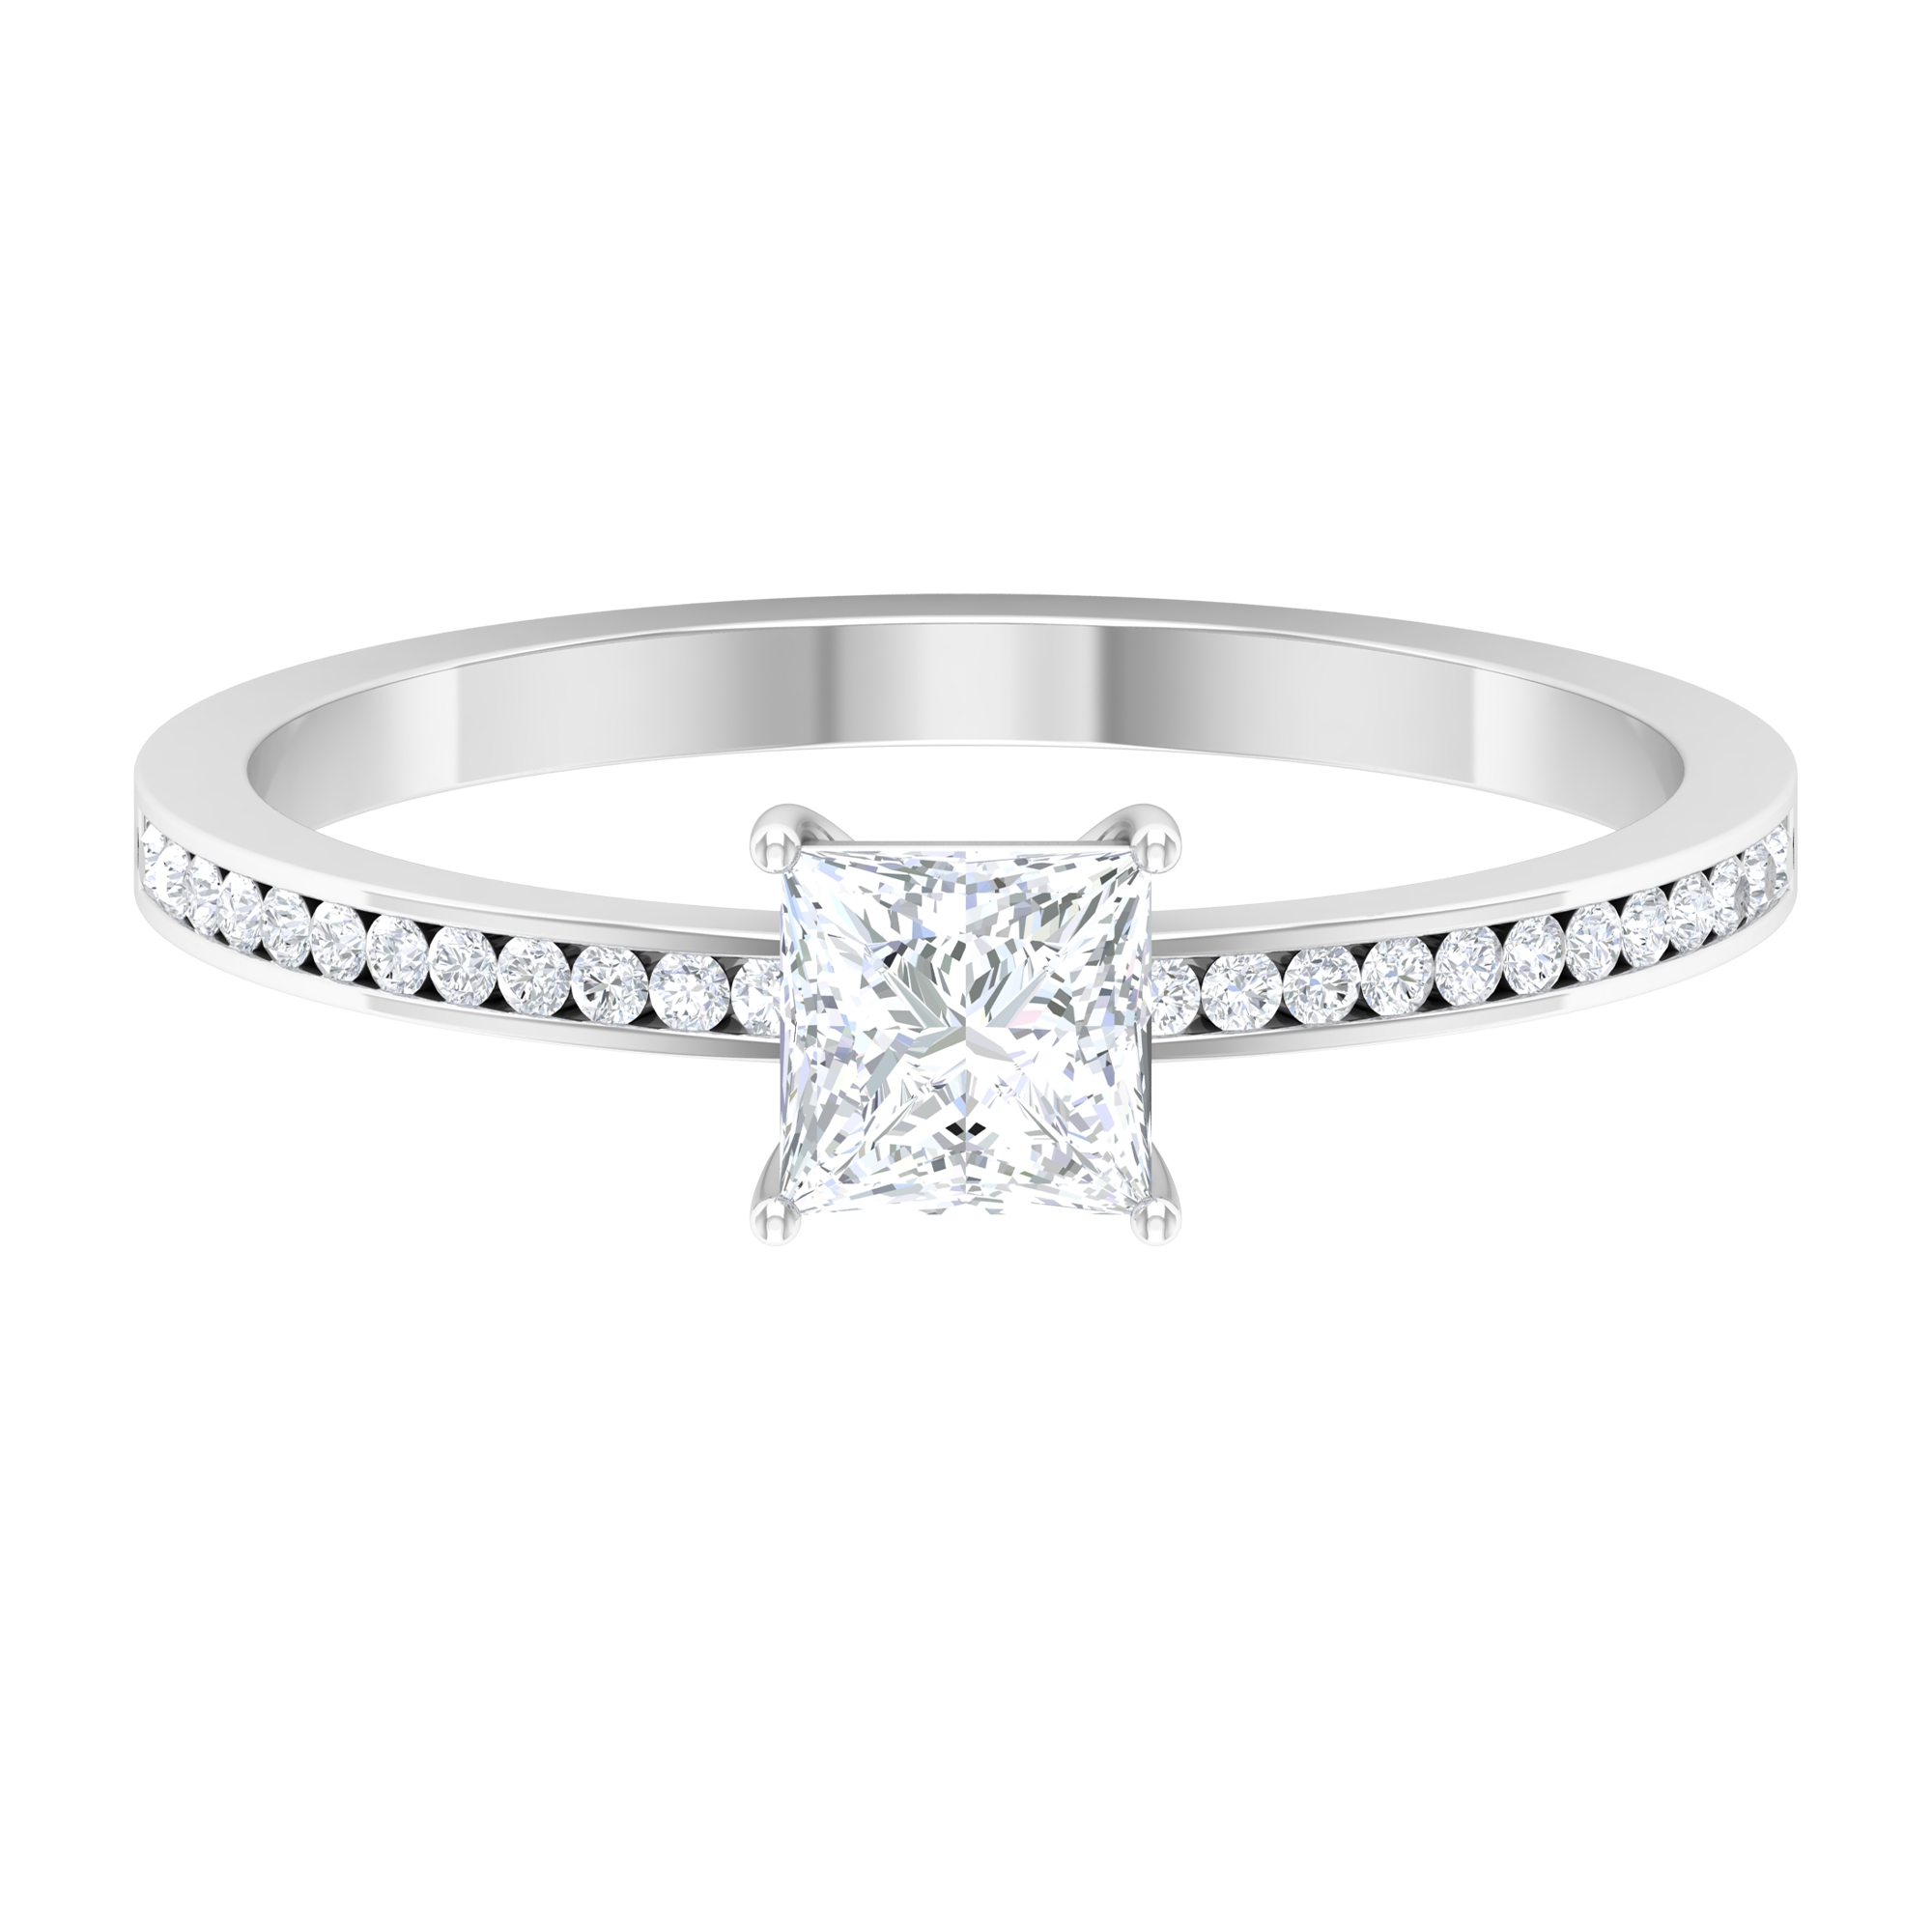 3/4 CT Four Prong Set Solitaire Diamond Ring with Channel Set Side Stones